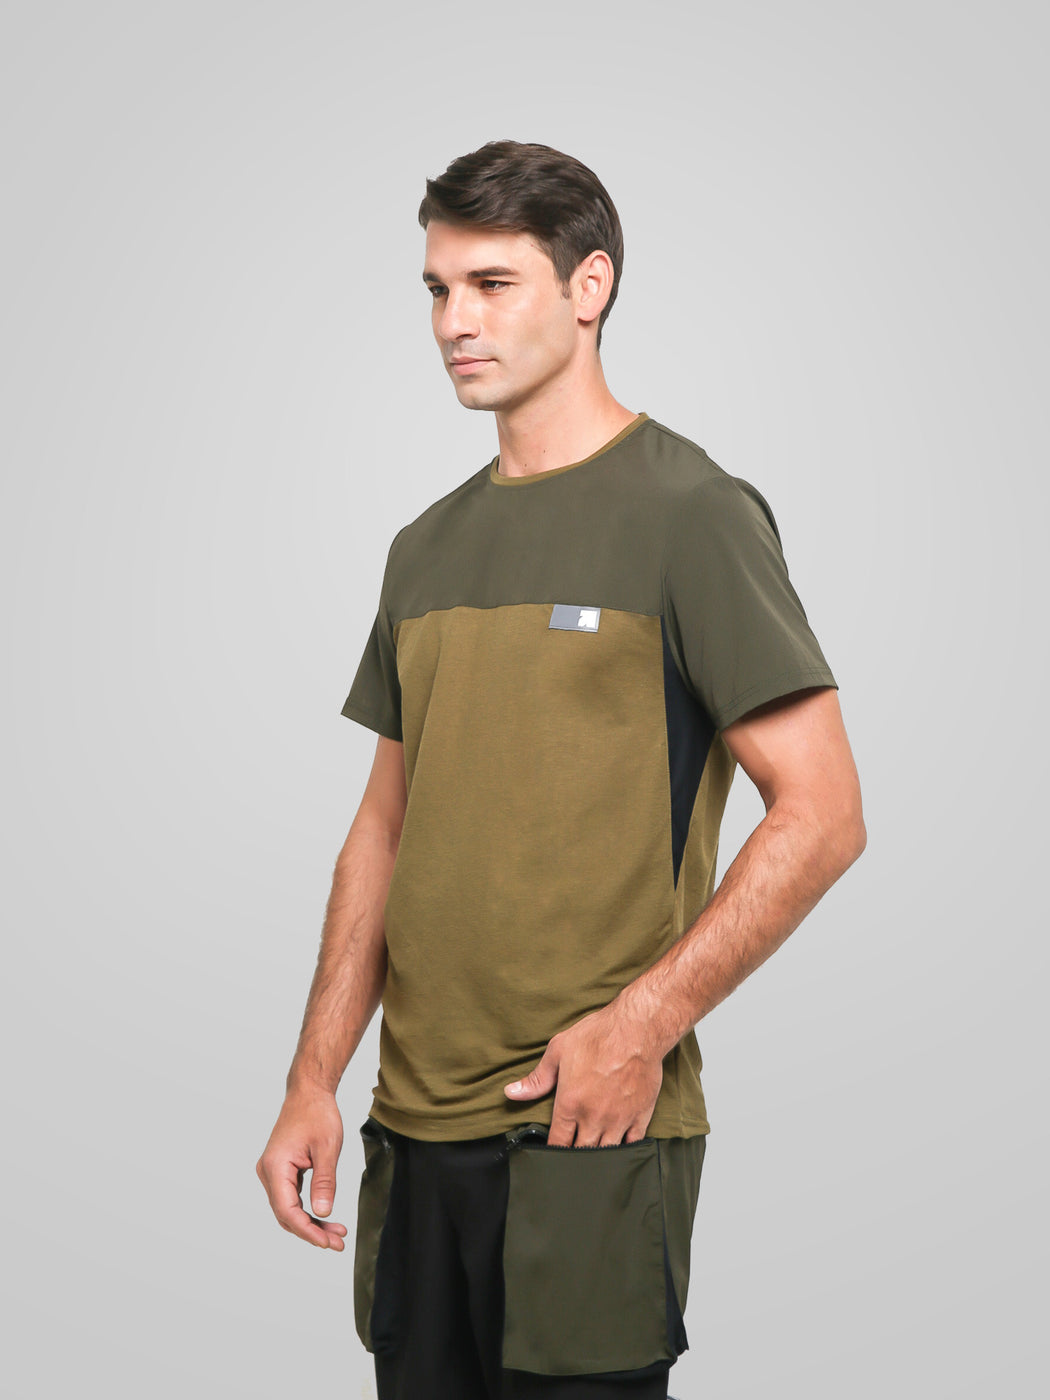 Unisex Ultimate Utilitarian Army Male T-shirt